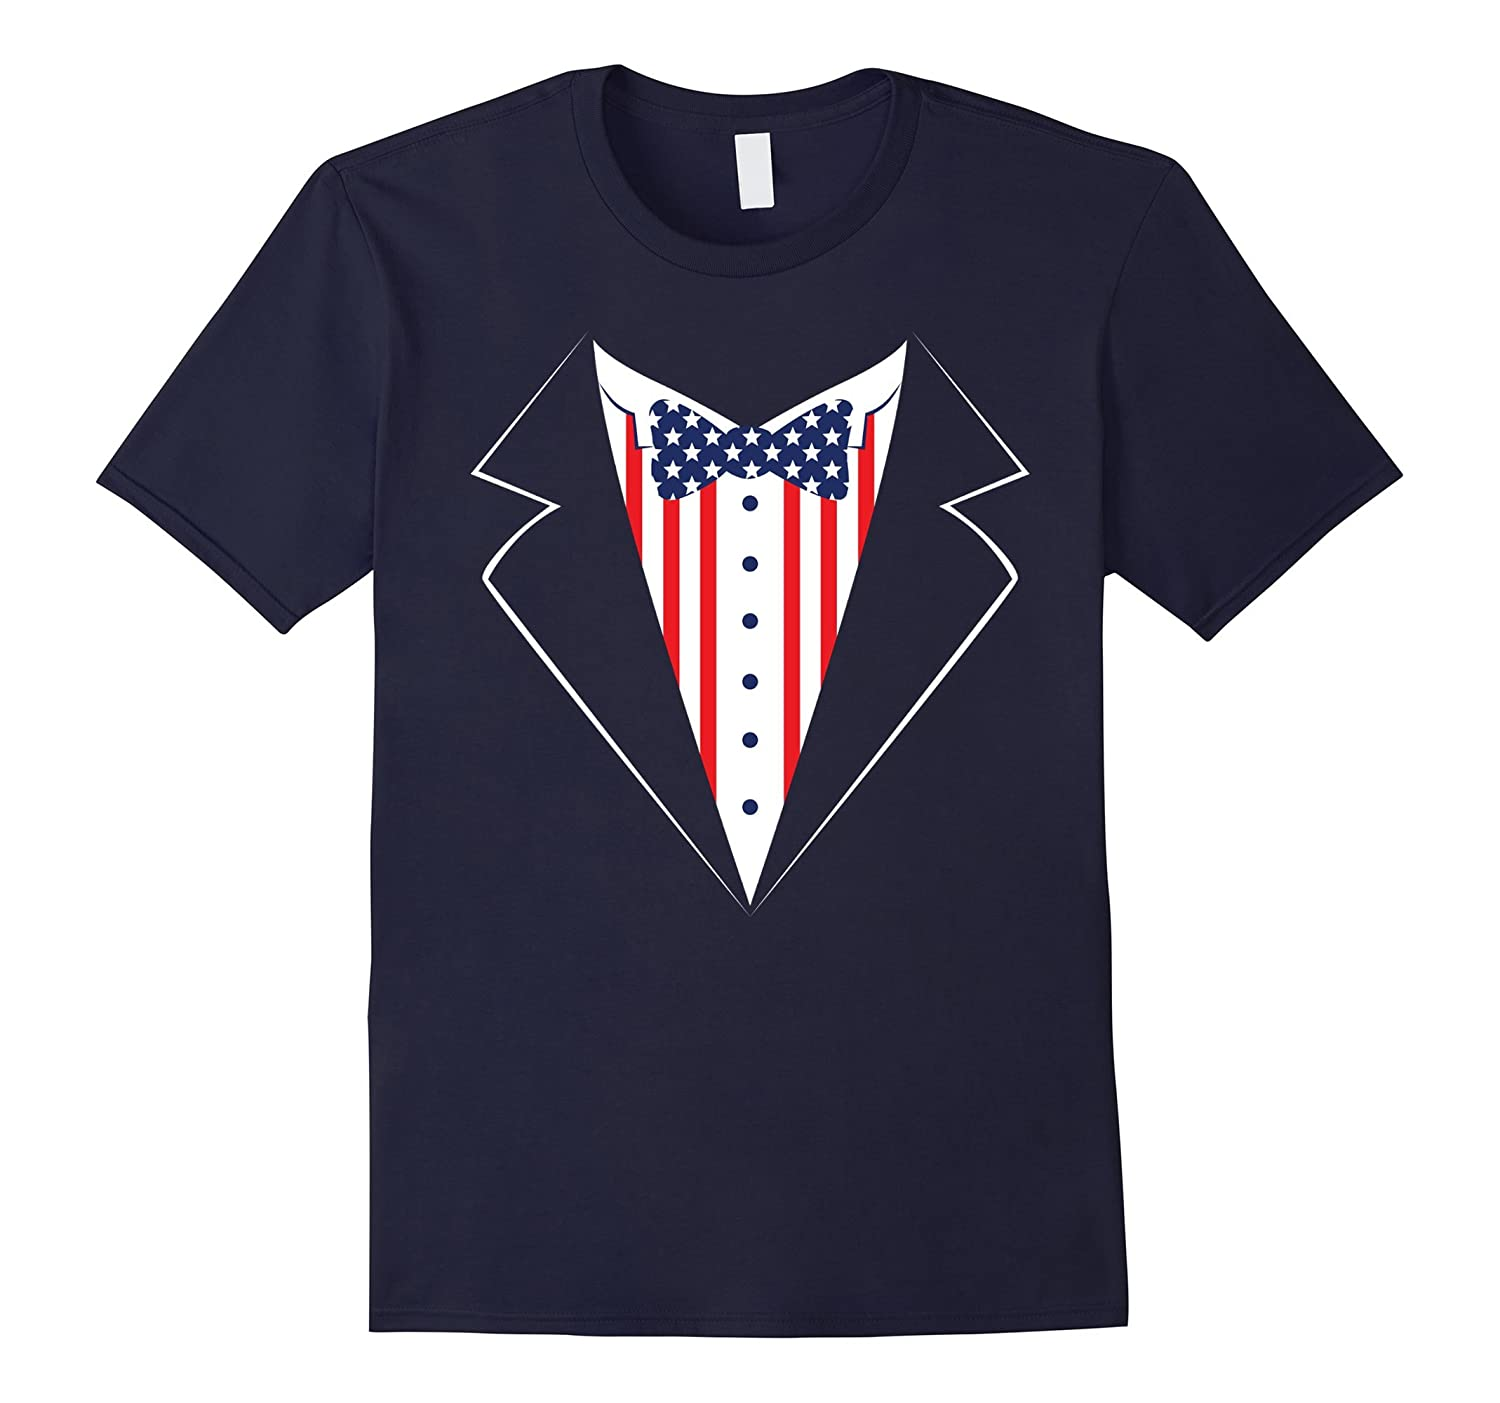 Red White and Blue Tuxedo Shirt Funny 4th of July America-Vaci